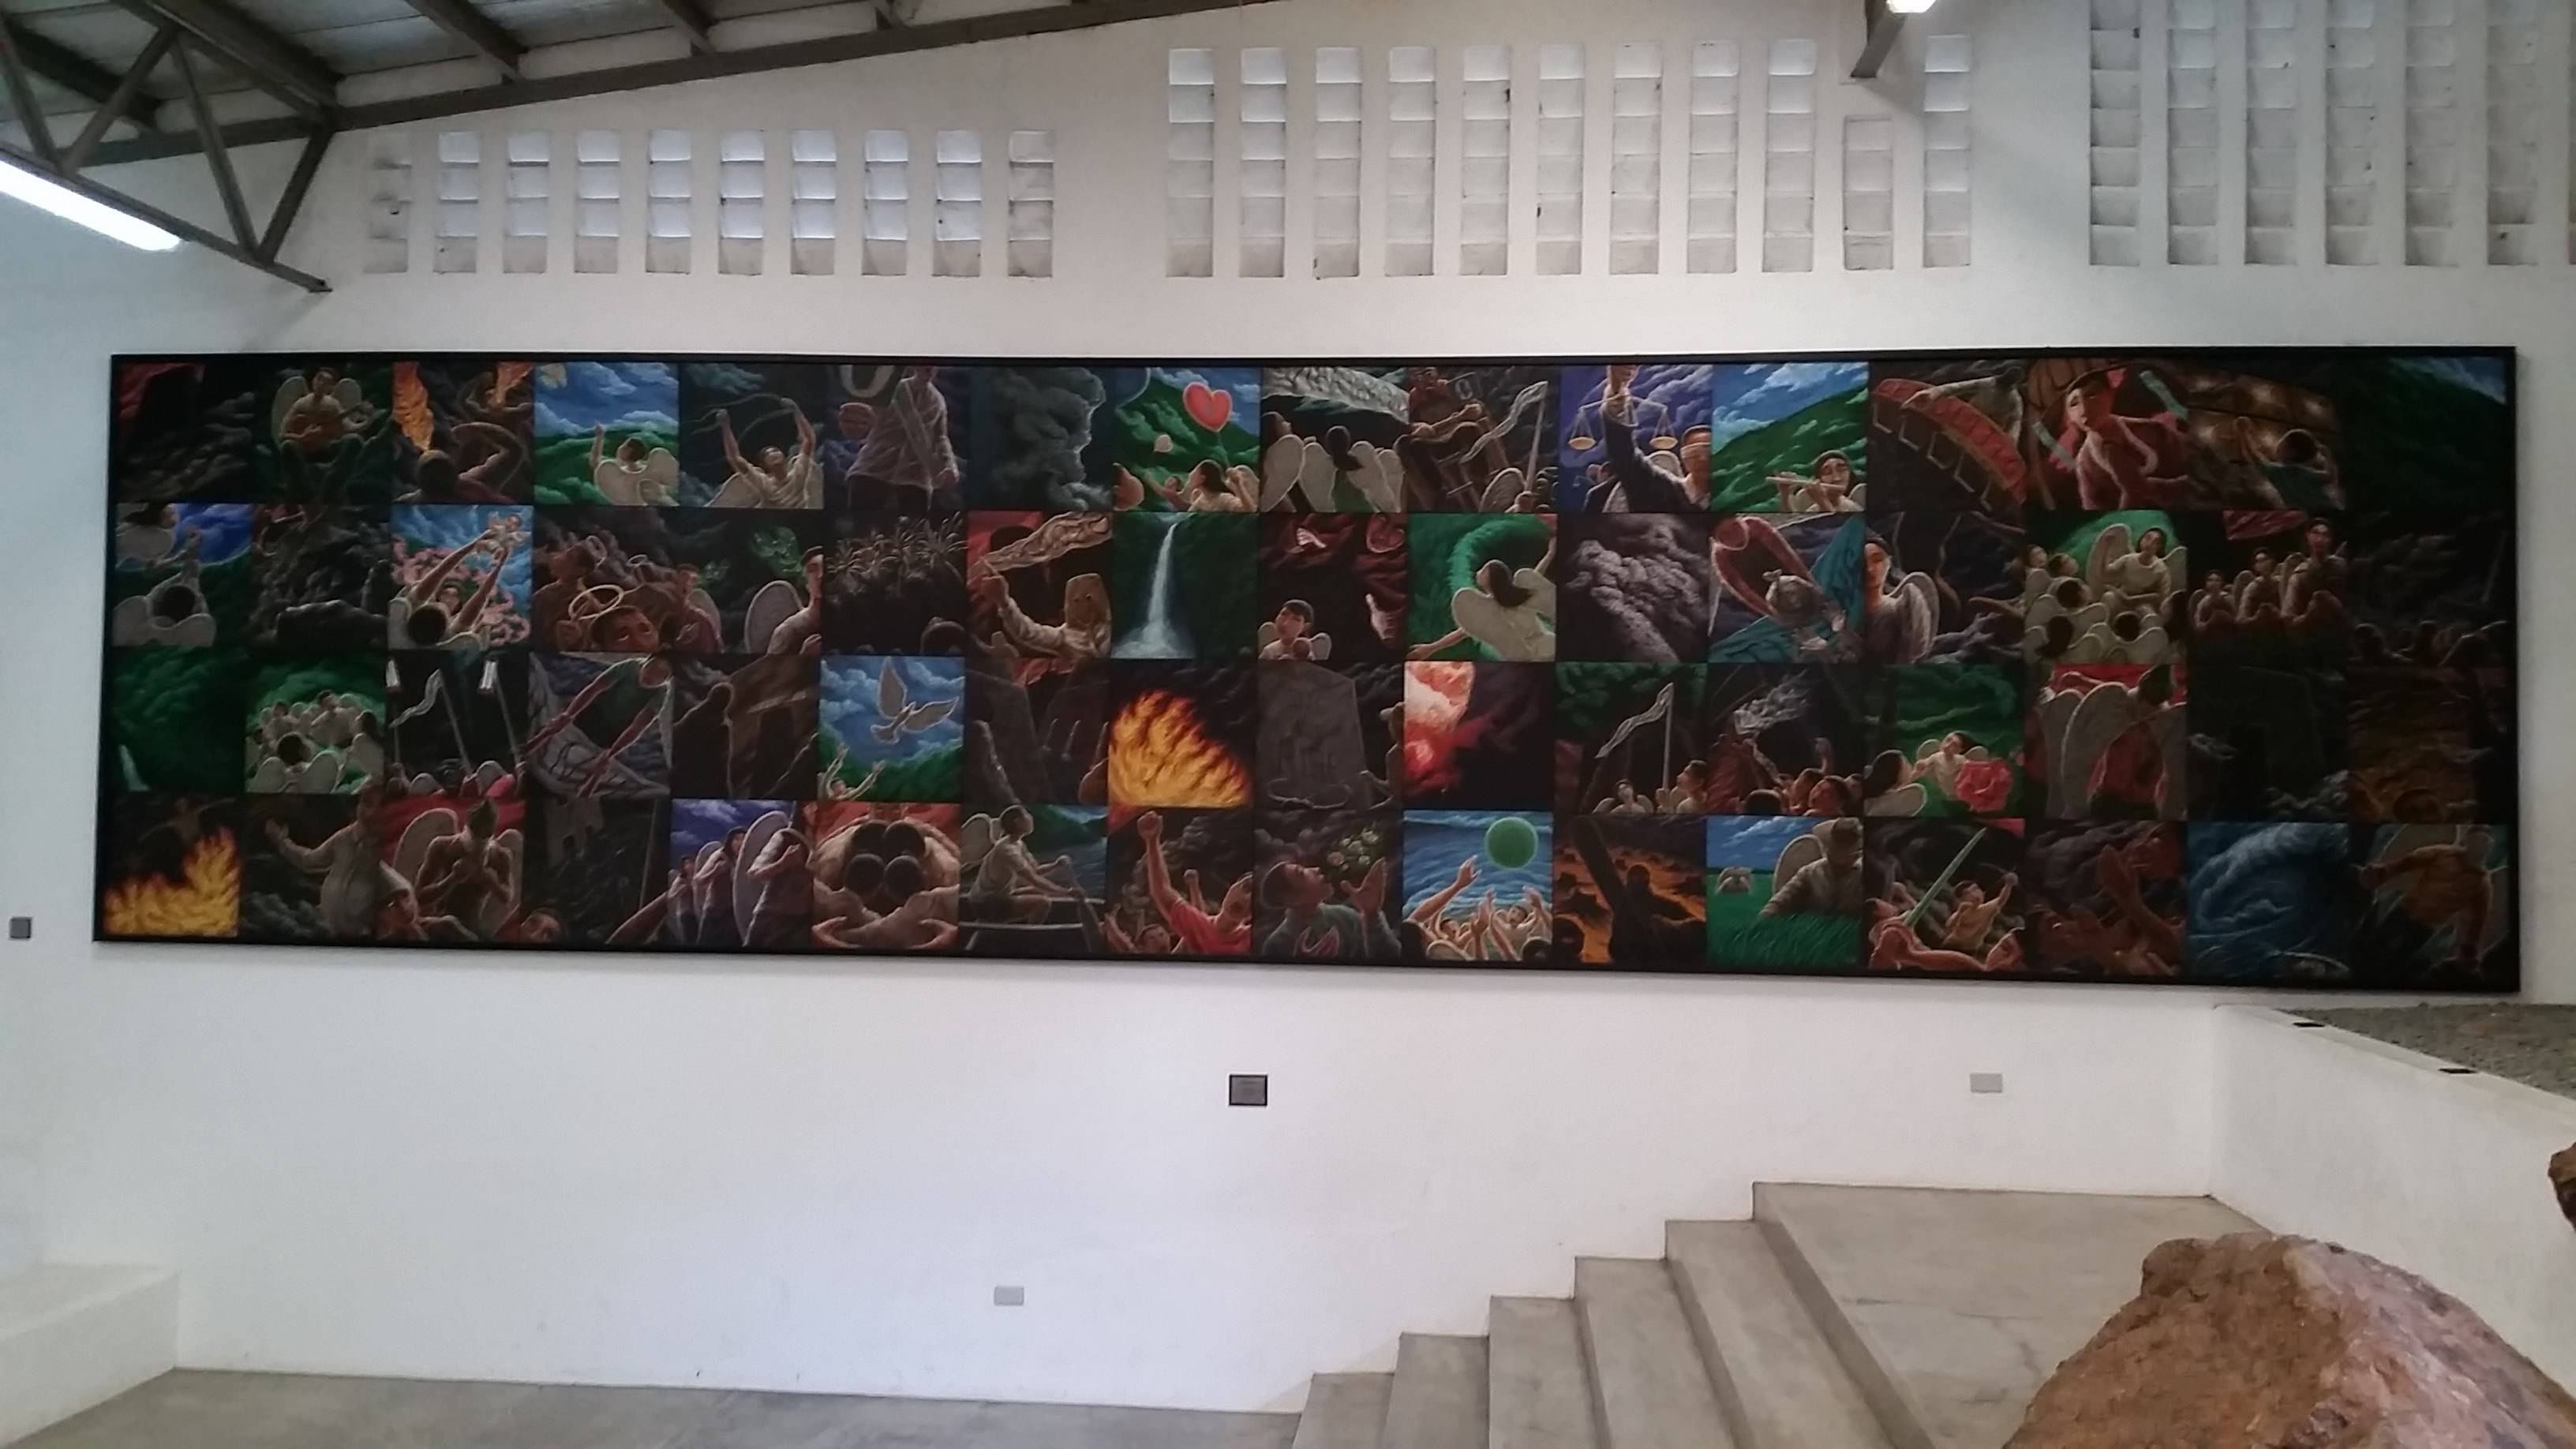 The Philippines: Pinto Art Museum – Chirontolifedotcom Pertaining To Most Current Filipino Wall Art (View 2 of 30)